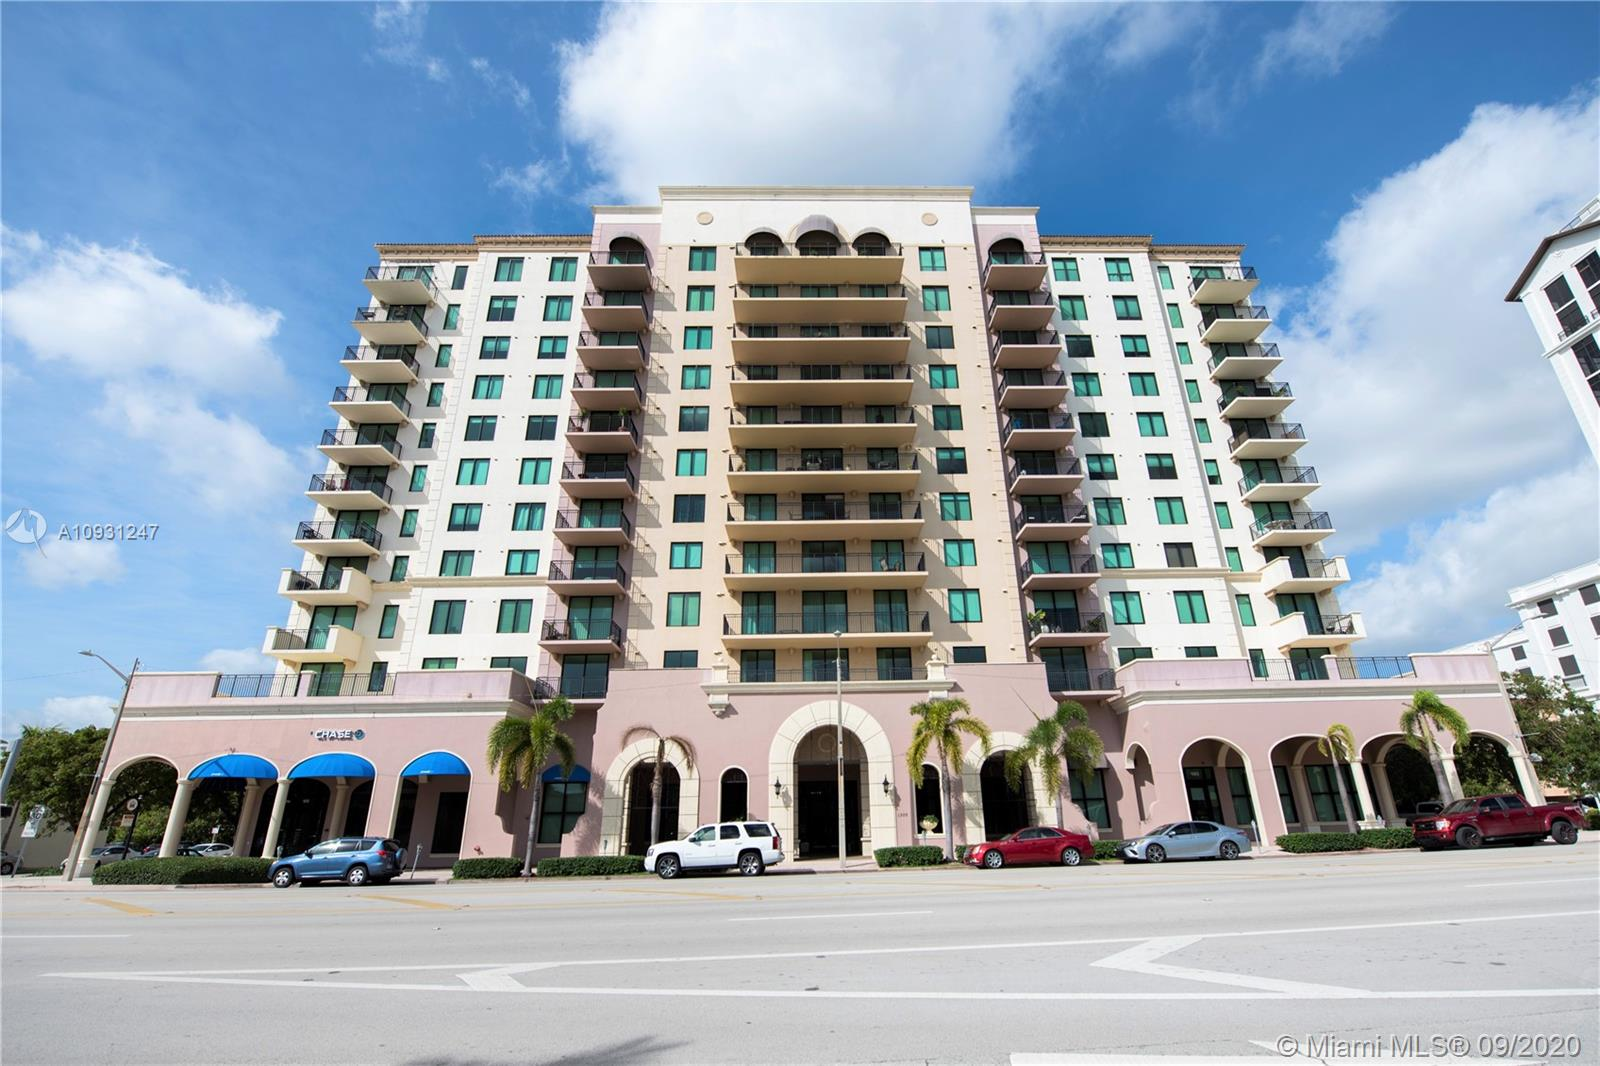 CONDO IN THE HEART OF CORAL GABLES. ONLY FEW STEPS OFF MIRACLE MILE AND PONCE DE LEON. MINUTES FROM MERRICK PARK AND WALK TO SHOPS AN DINNING. CLOSE TO AIRPORT. INCLUDES WOOD CABINETS IN KITCHEN AND BATHROOMS, GRANITE COUNTER TOPS IN KITCHEN, MARBLE COUNTER TOPS IN BATHROOMS, ALL STAINLESS STEEL KITCHEN APPLIANCES. IMPACT WINDOWS AND CALIFORNIA WALKING CLOSETS. TWO ASSIGNED PARKING SPACES